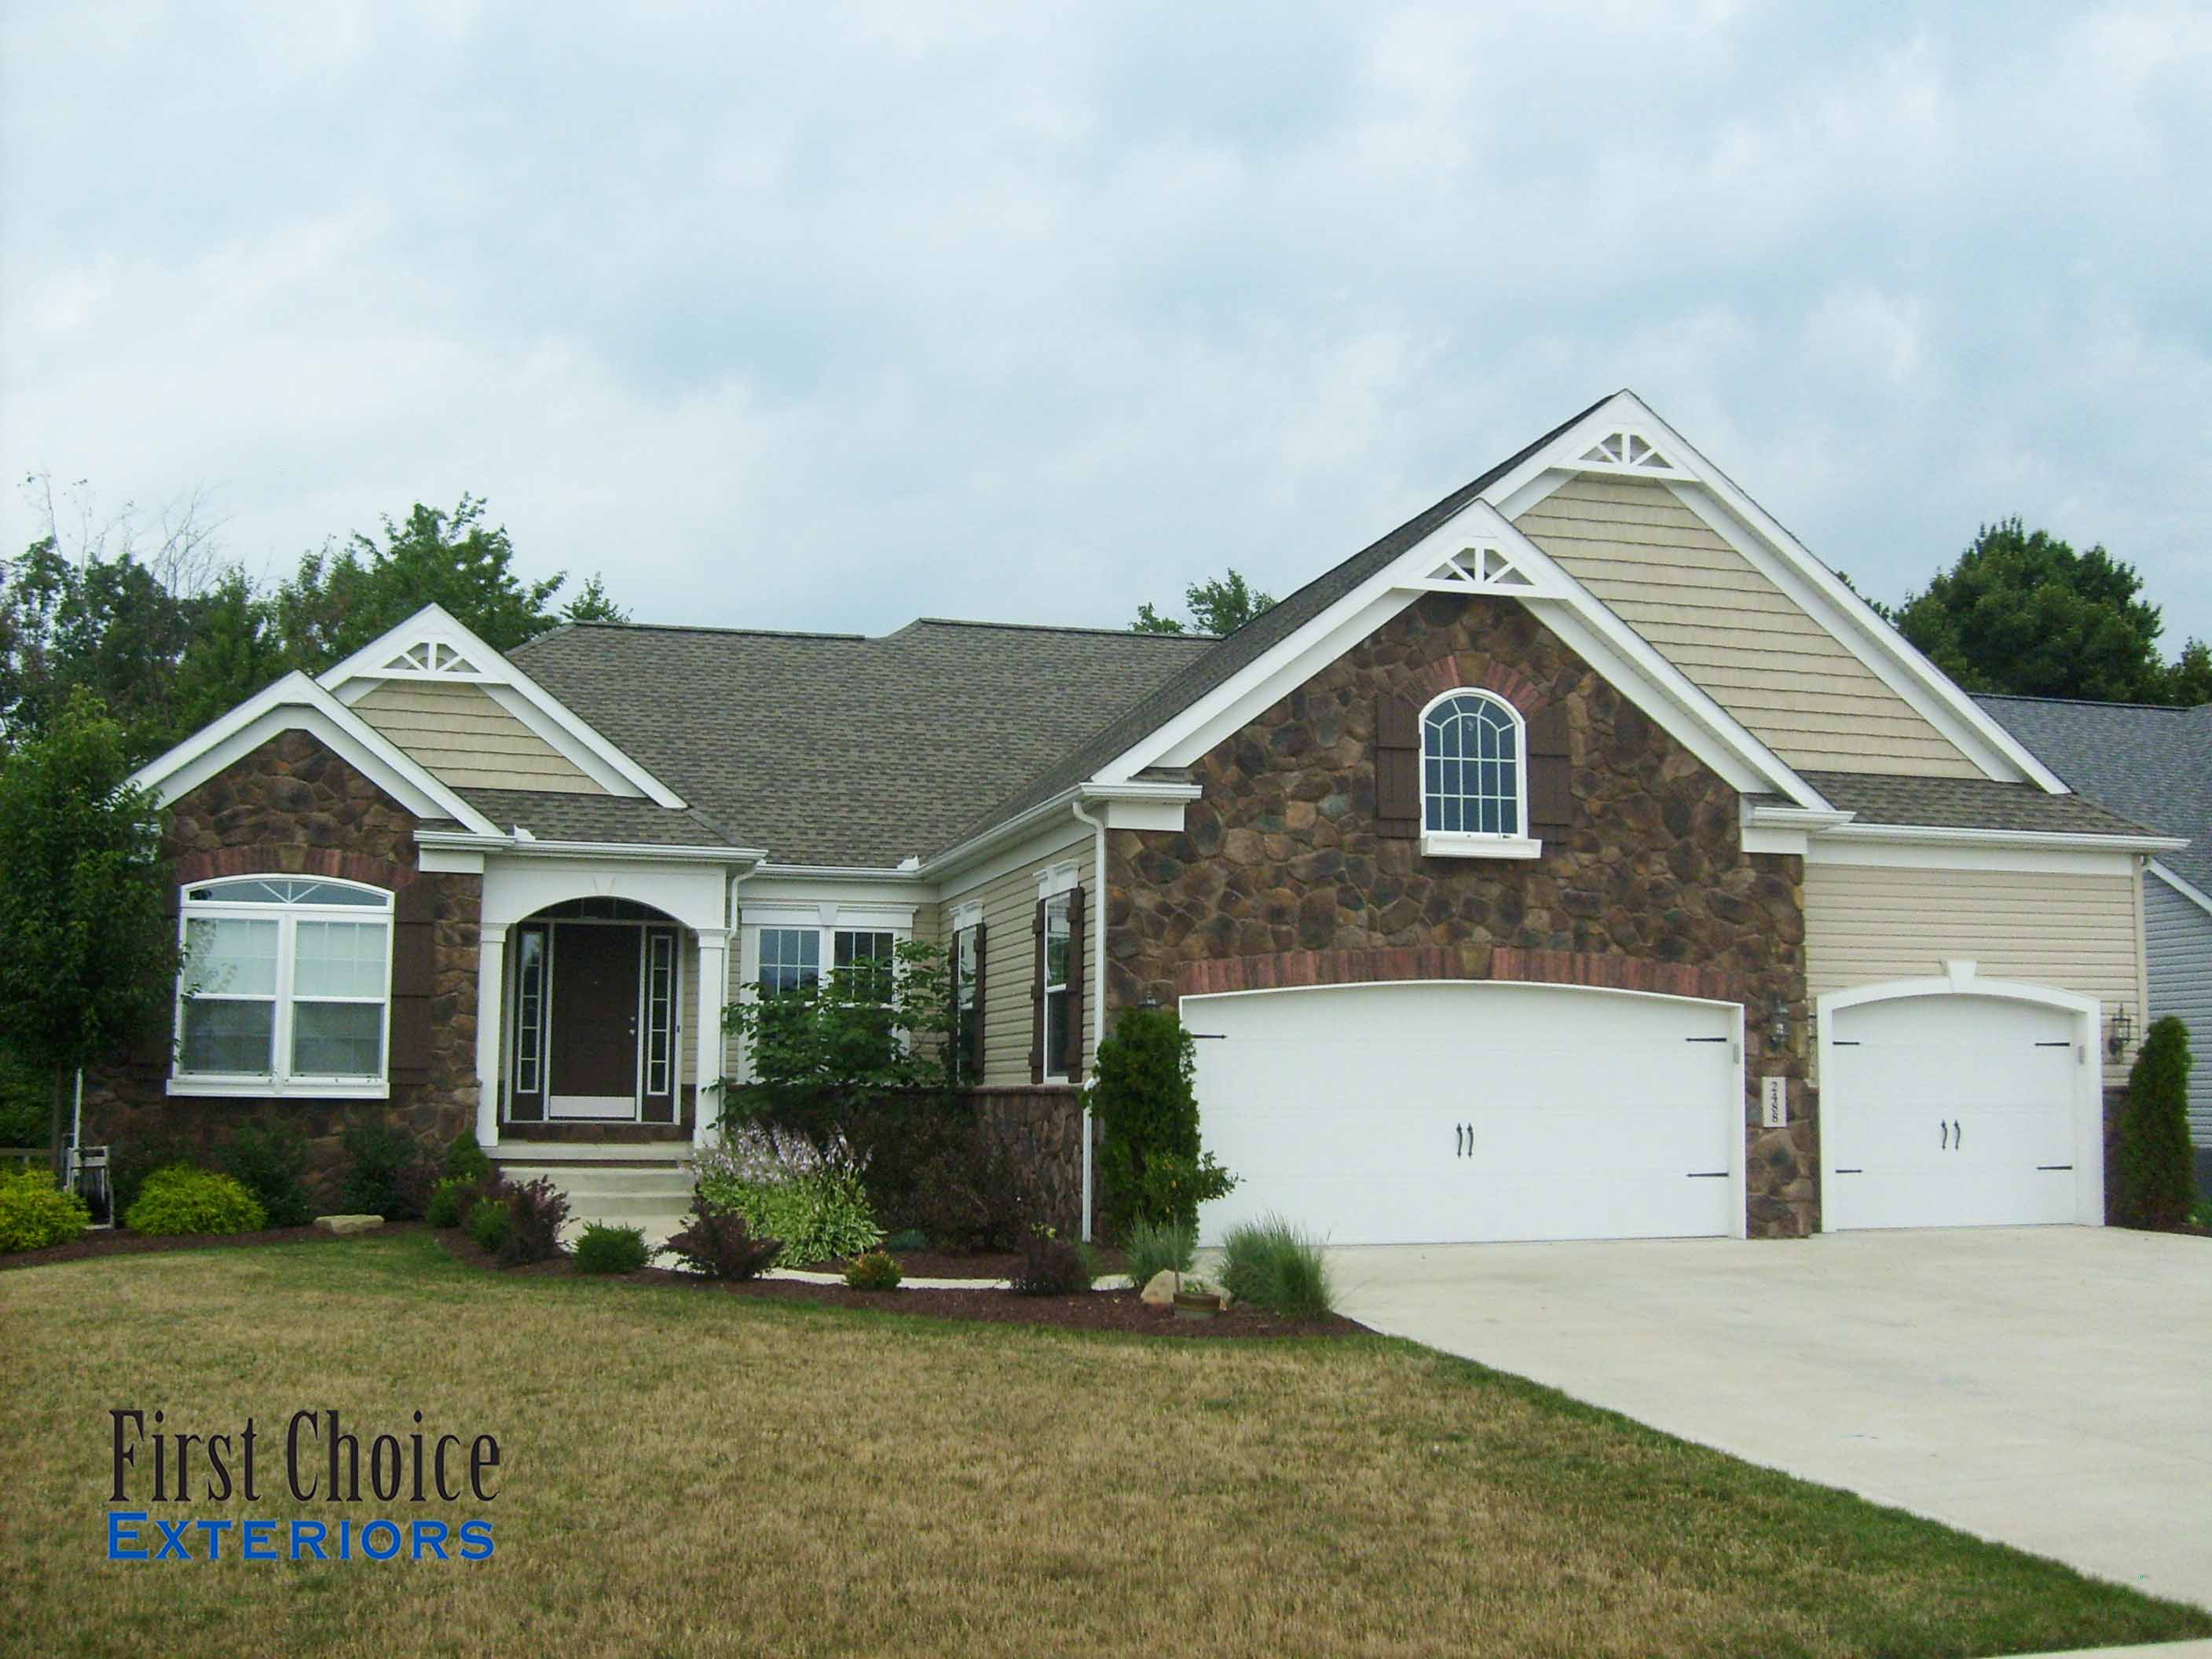 home first choice exteriors quality exterior products